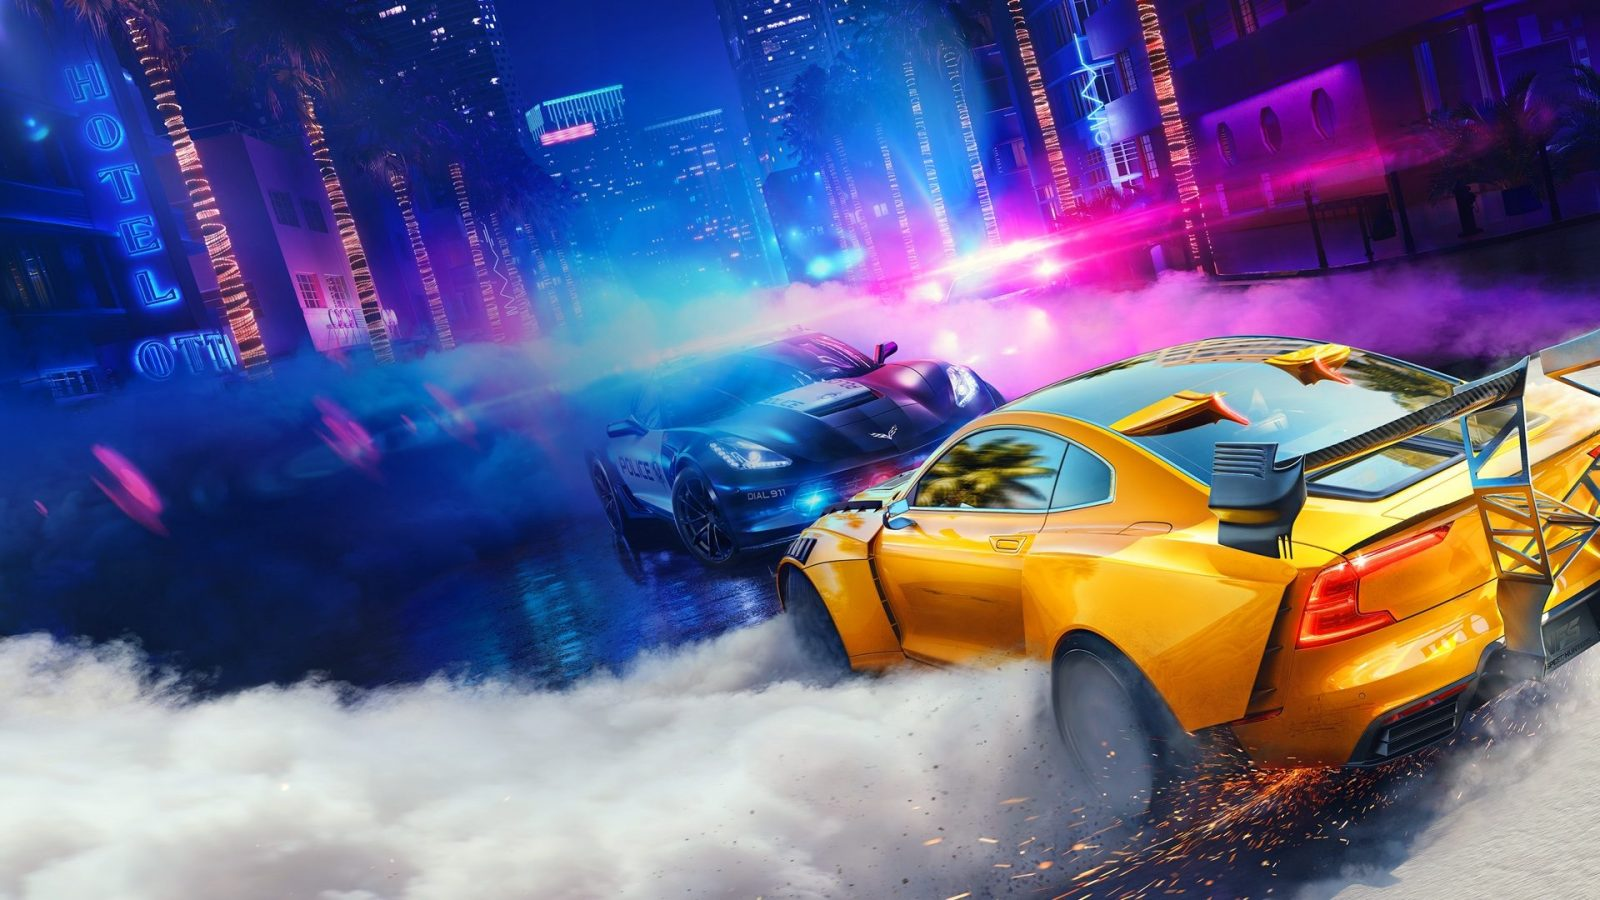 Need For Speed Heat Studio App Adds Augmented Reality Feature